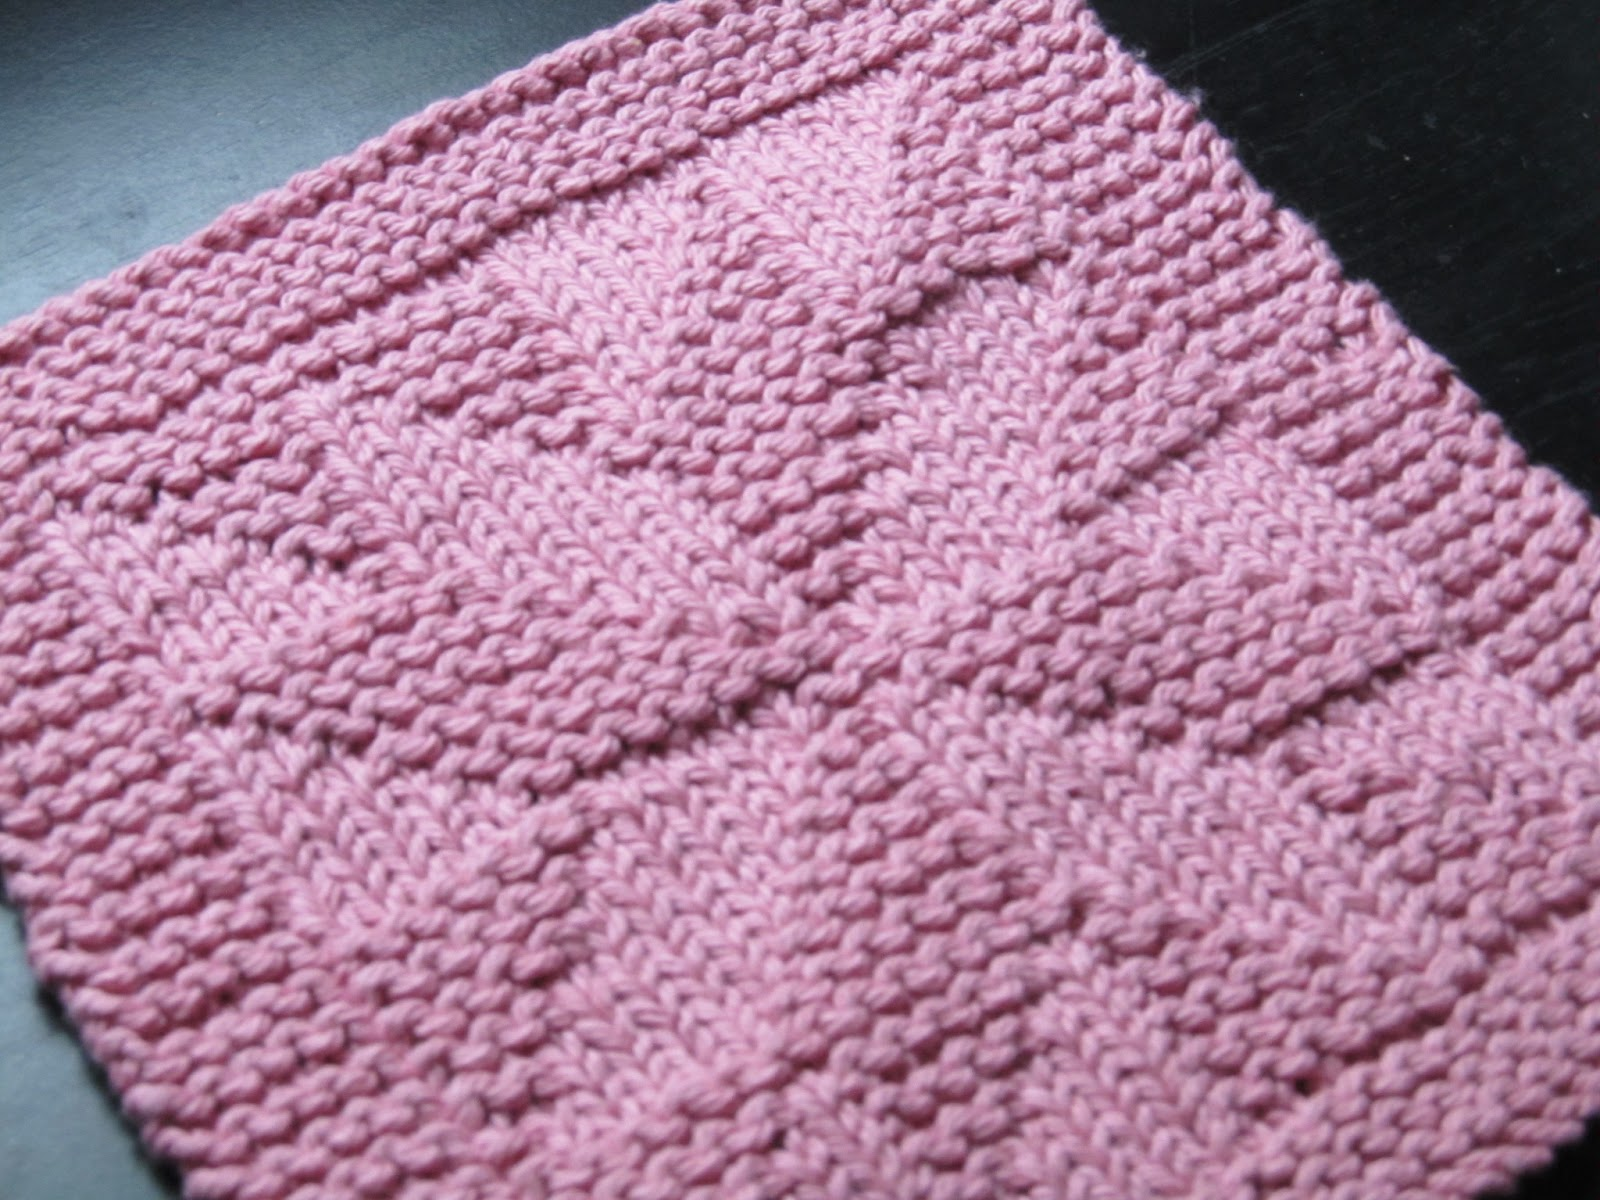 Simple Dishcloth Knitting Pattern : Knitted Cotton Dishcloths Car Interior Design